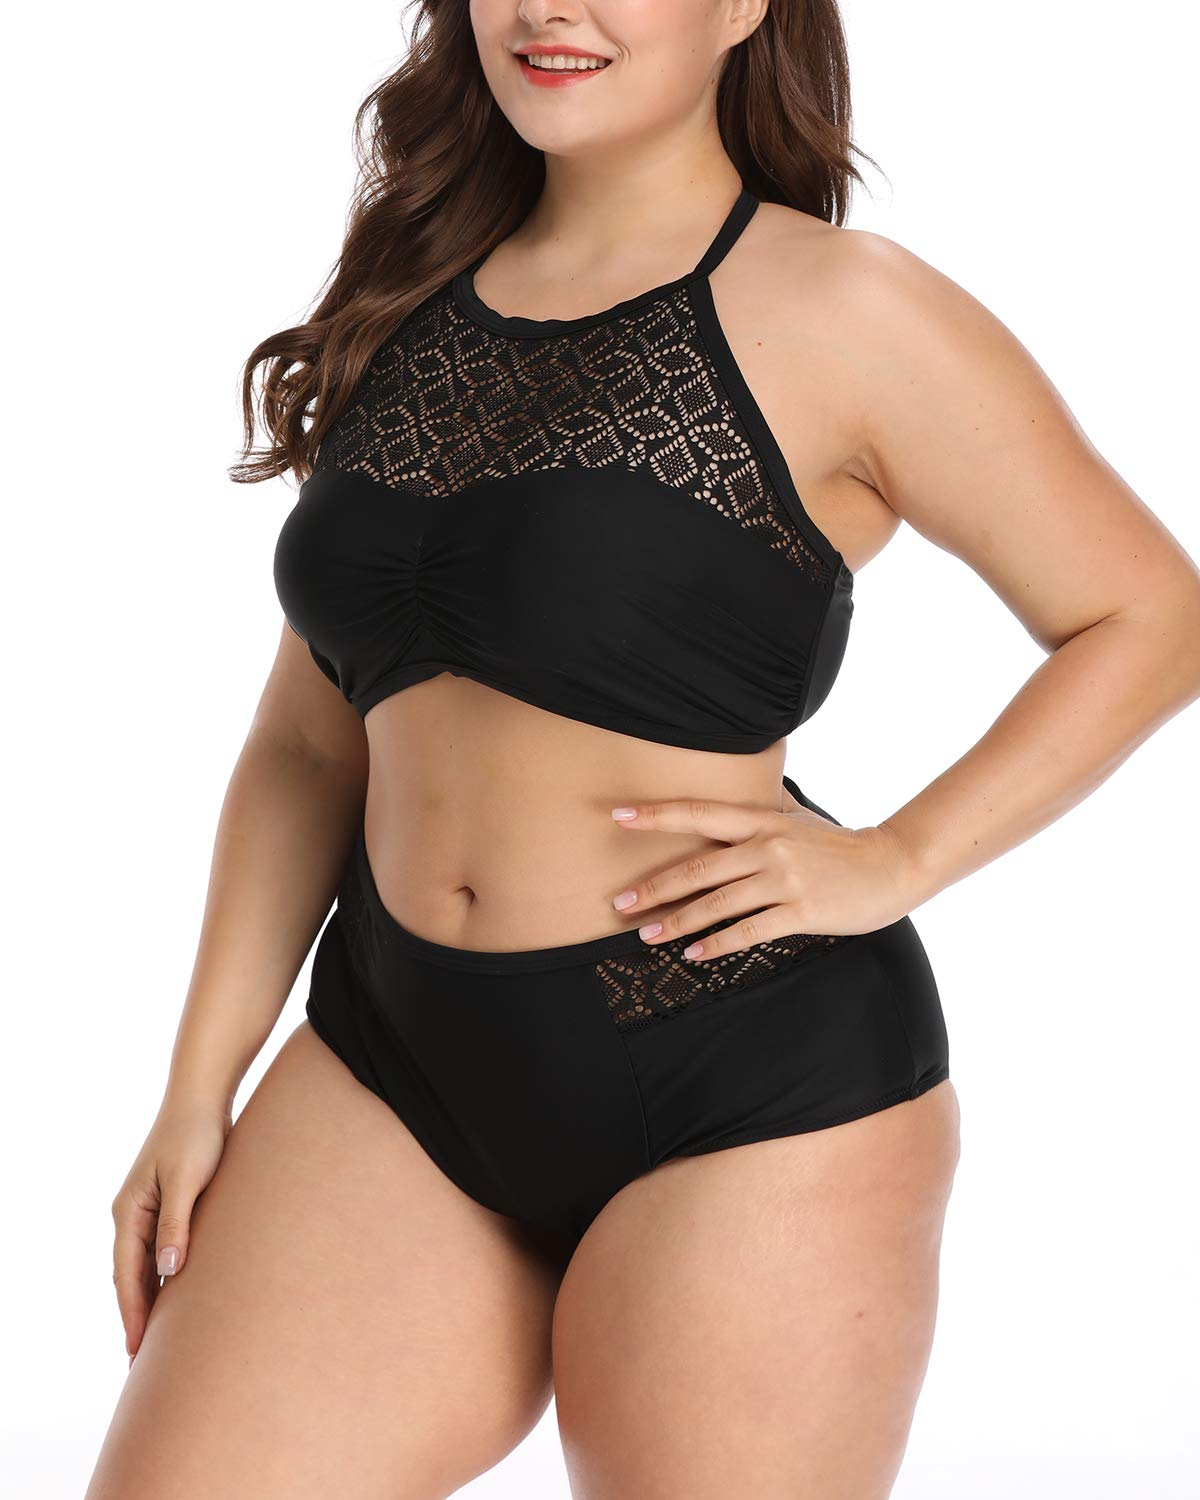 Wavely Woman Two Piece Plus Size Vintage Lace Halter Bikini Top with Triangle Briefs Bottoms L